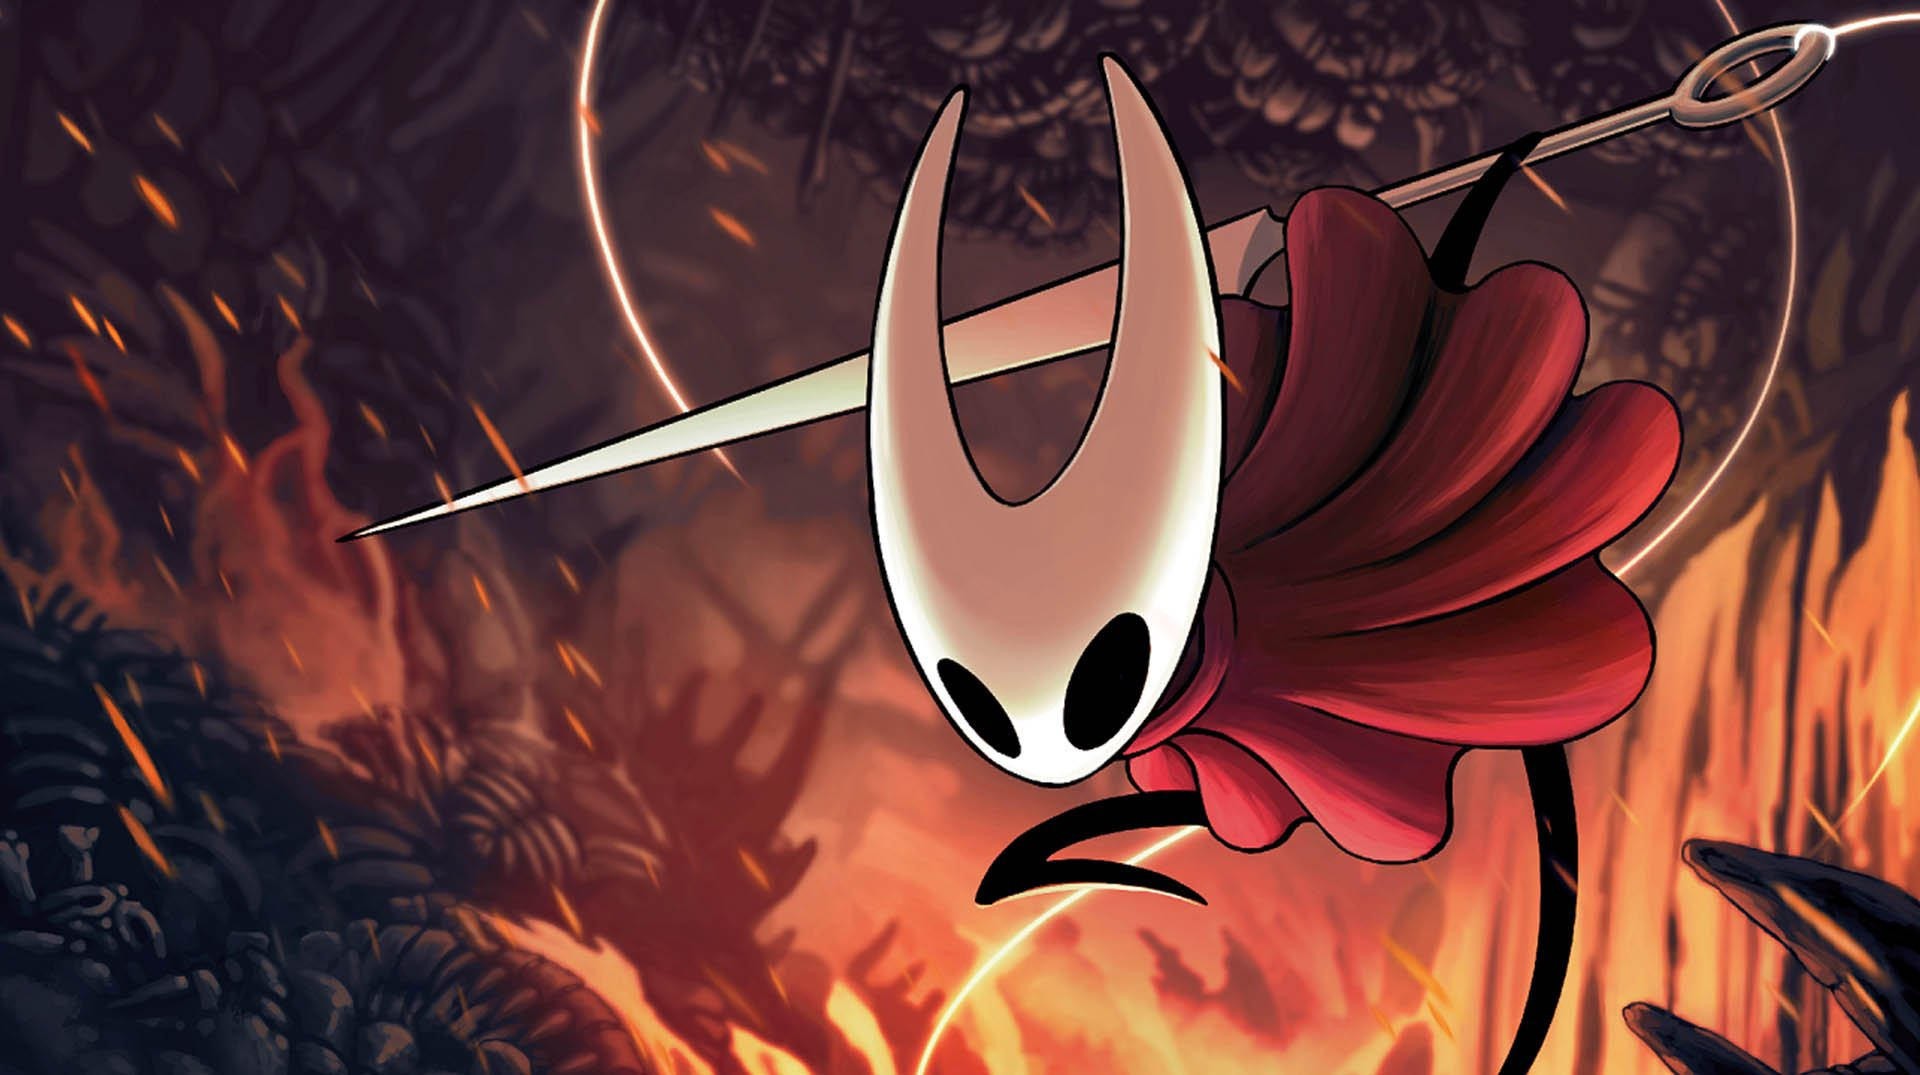 """Team Cherry Shares More Hollow Knight: Silksong Details, Will Launch """"When It's Ready"""""""